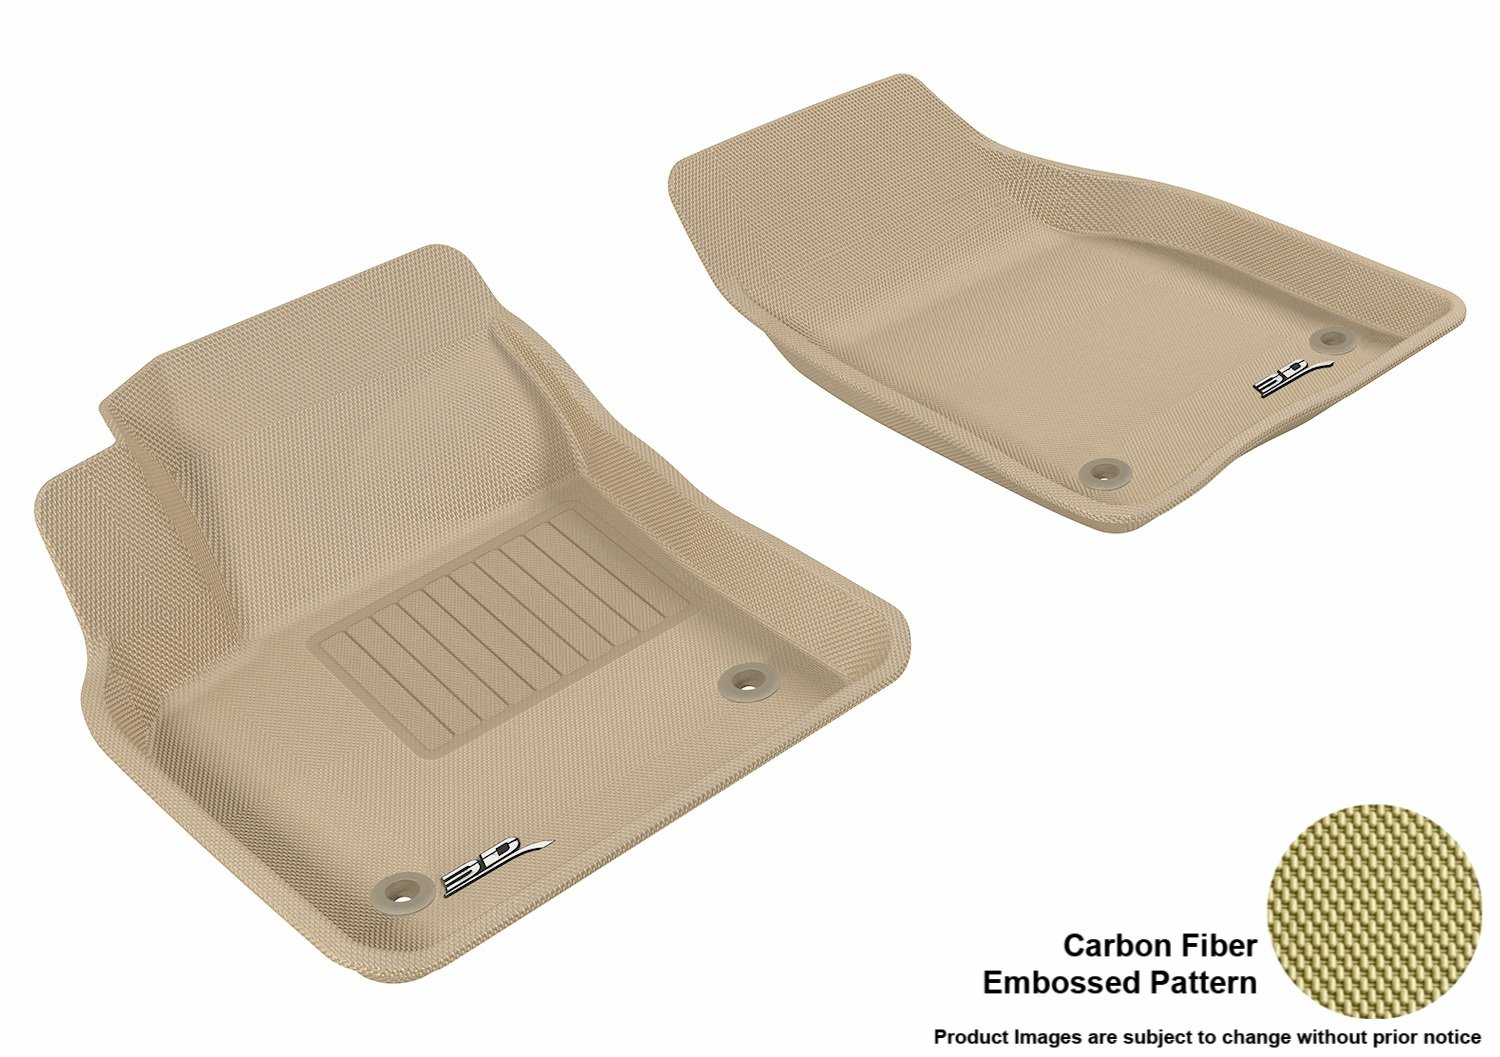 M1VV0031309 3D MAXpider Cargo Custom Fit All-Weather Floor Mat for Select Volvo S40 Models Black Kagu Rubber